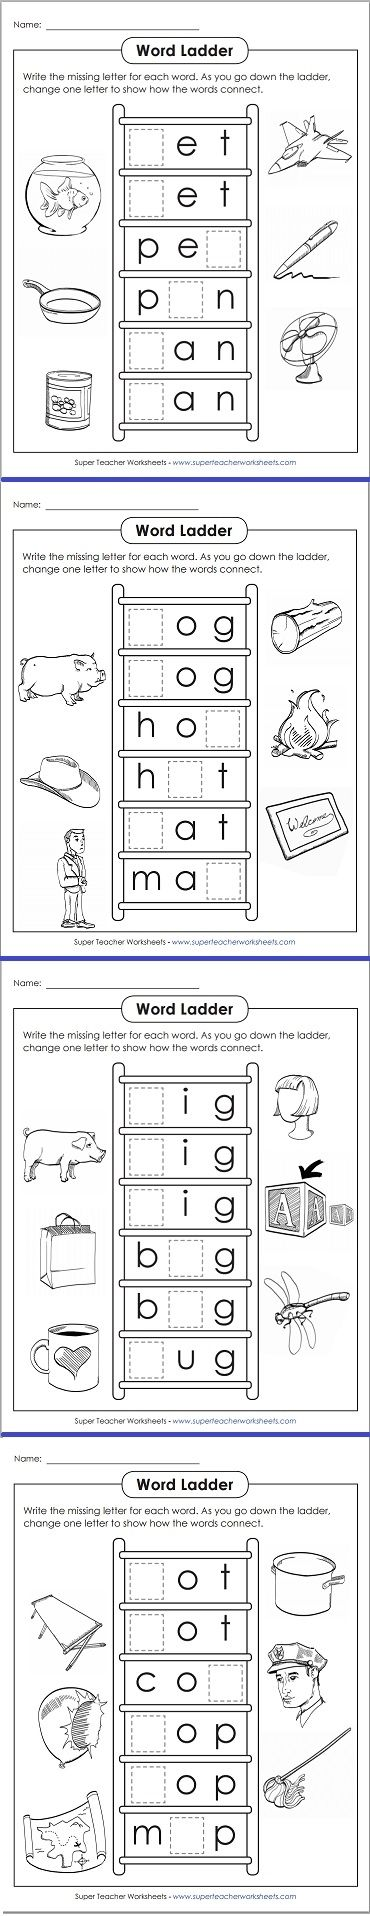 take a look at these fun word ladders for phonics practice